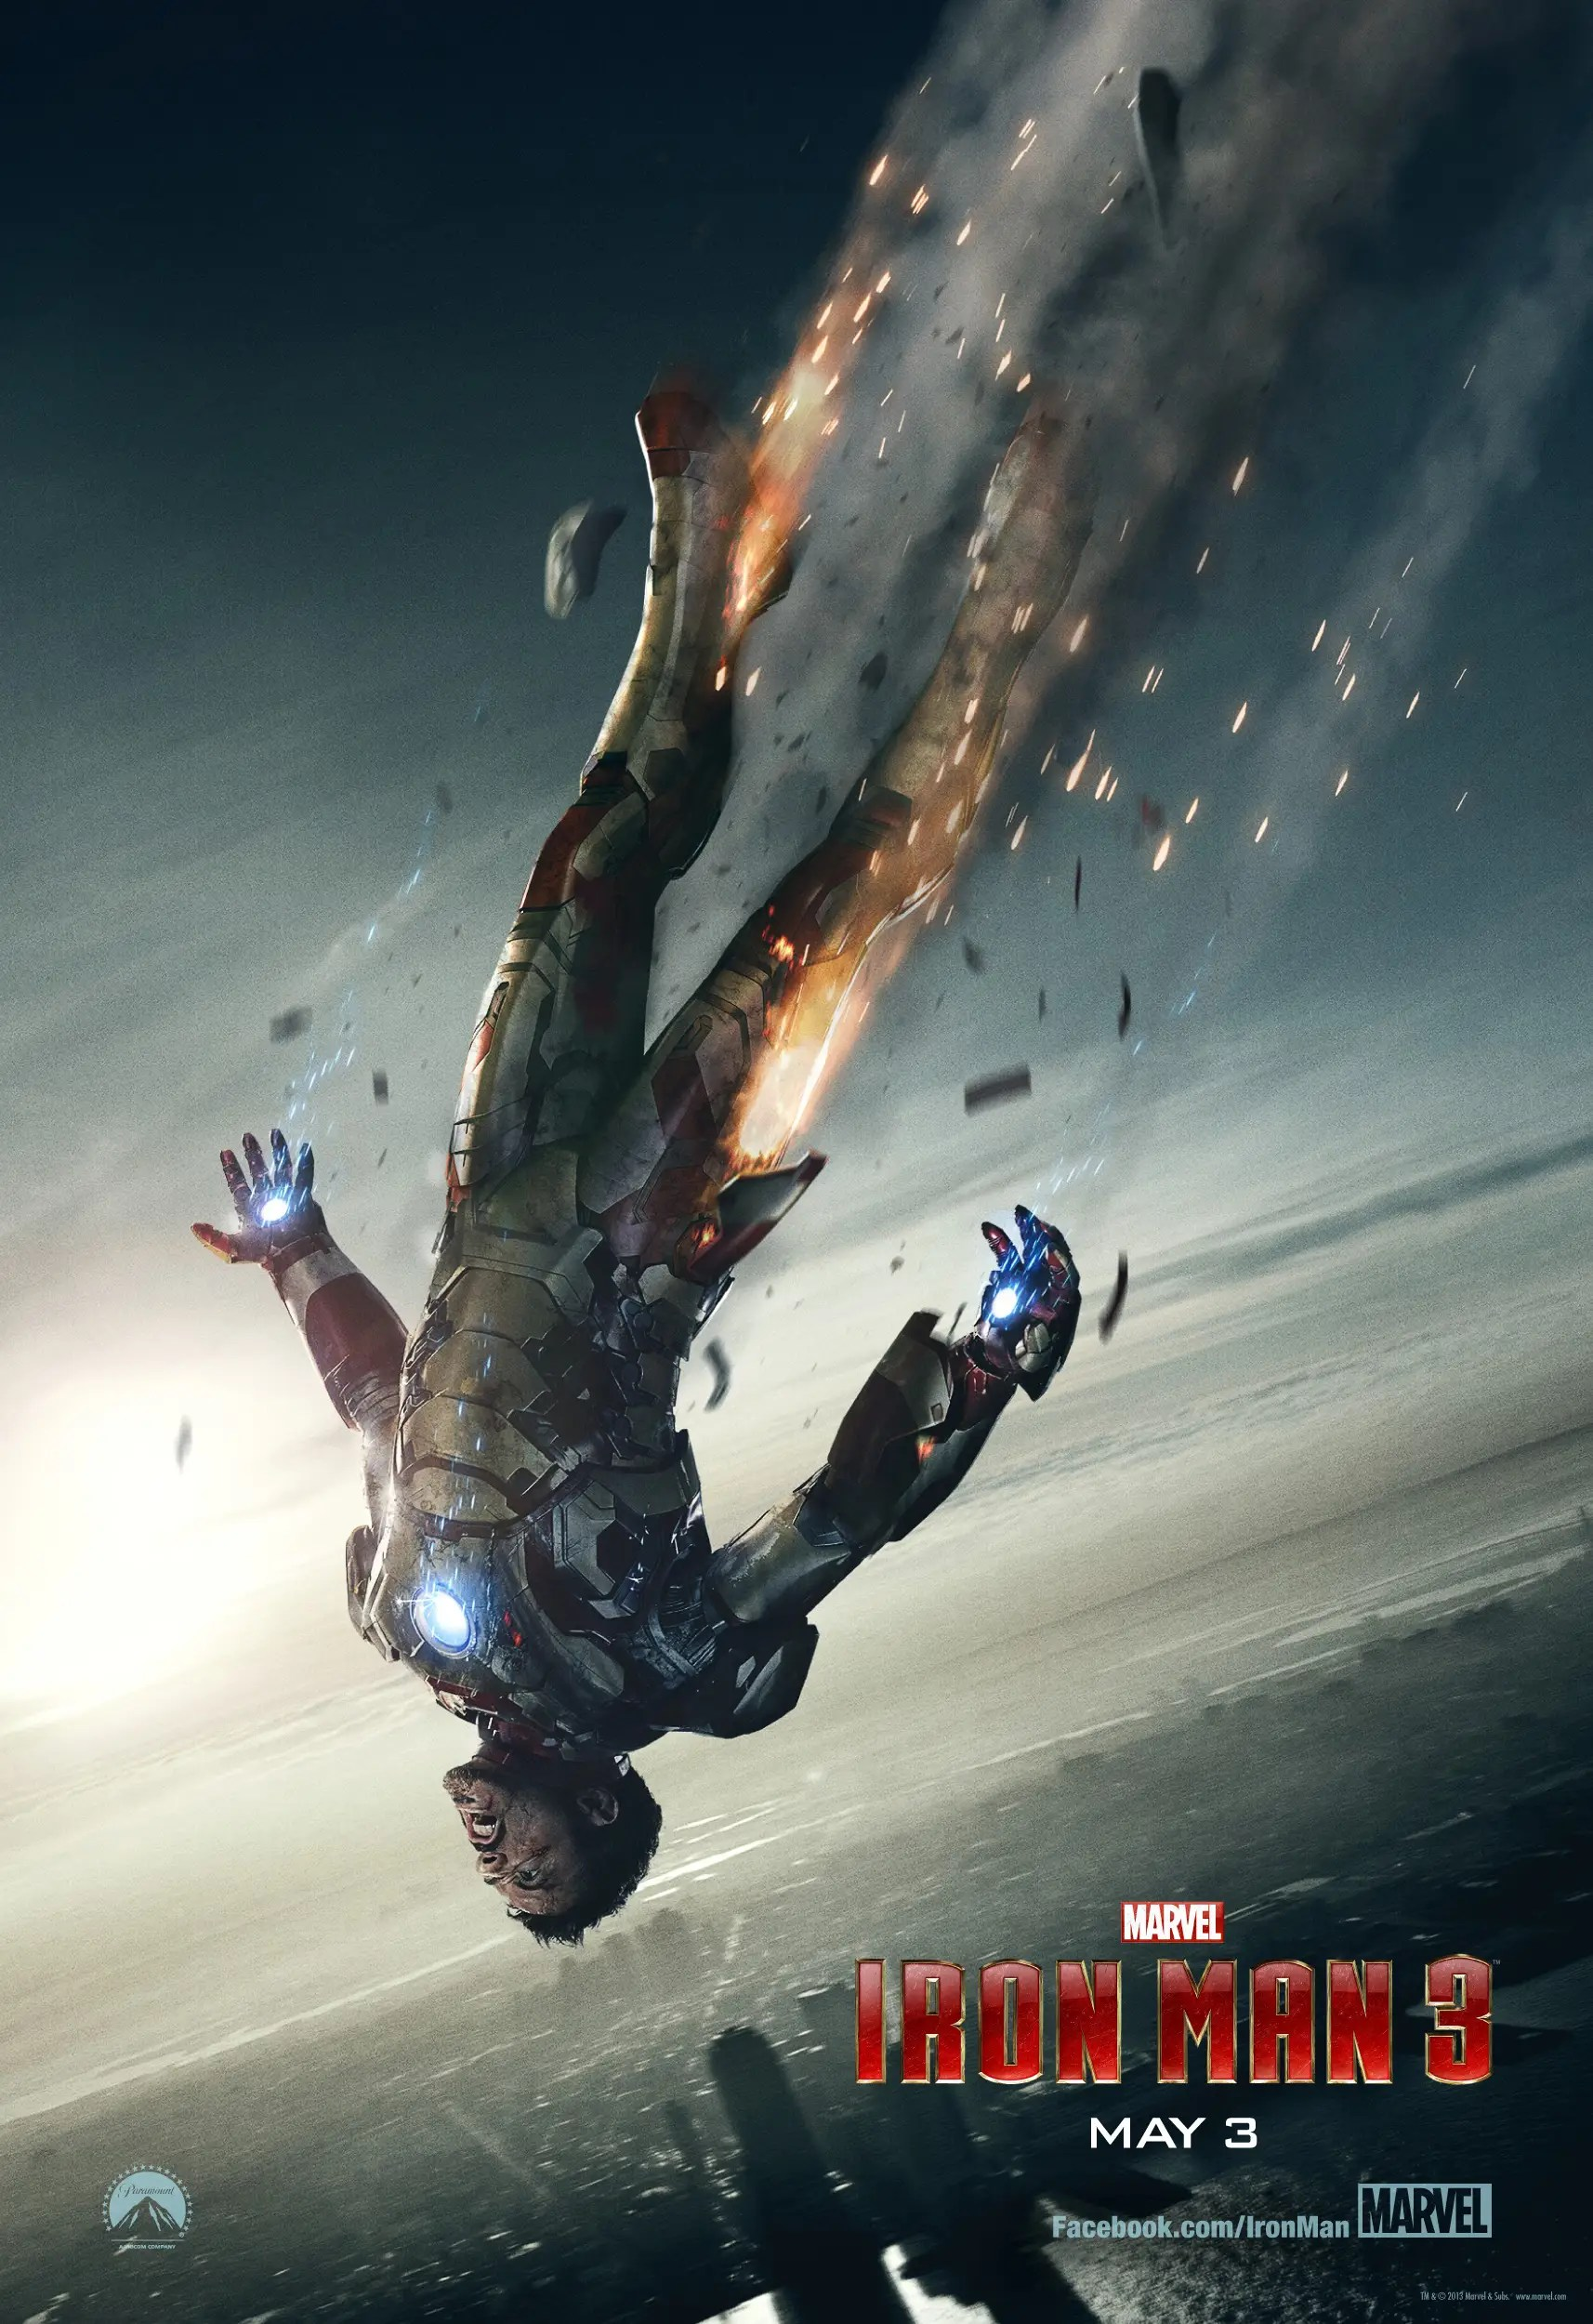 iron man falling to earth poster